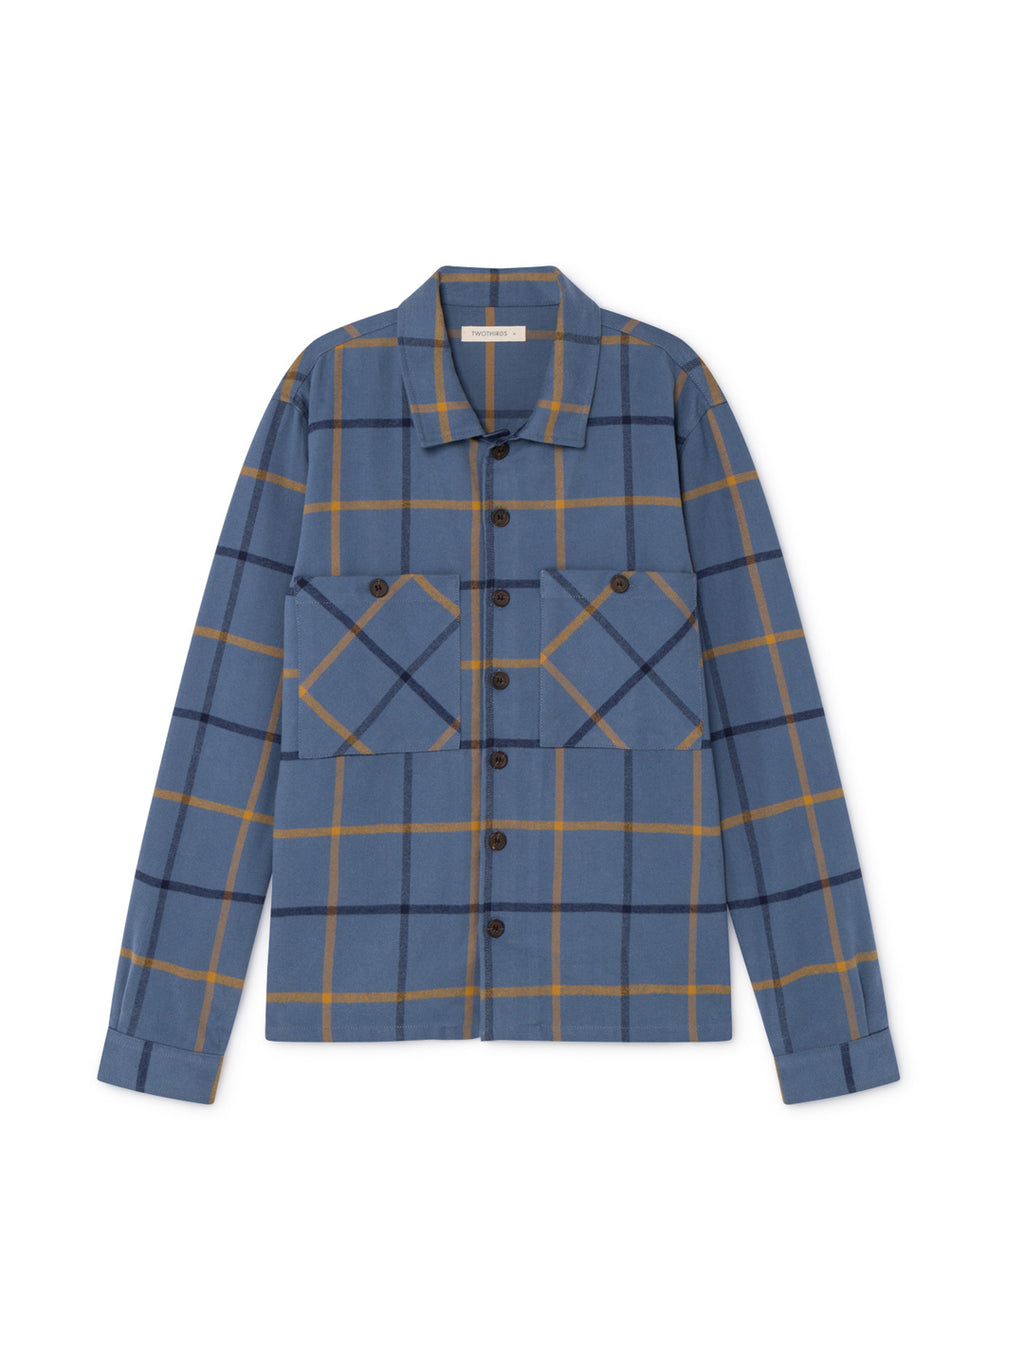 TWOTHIRDS Mens Shirt: Briñas - Blue Check front